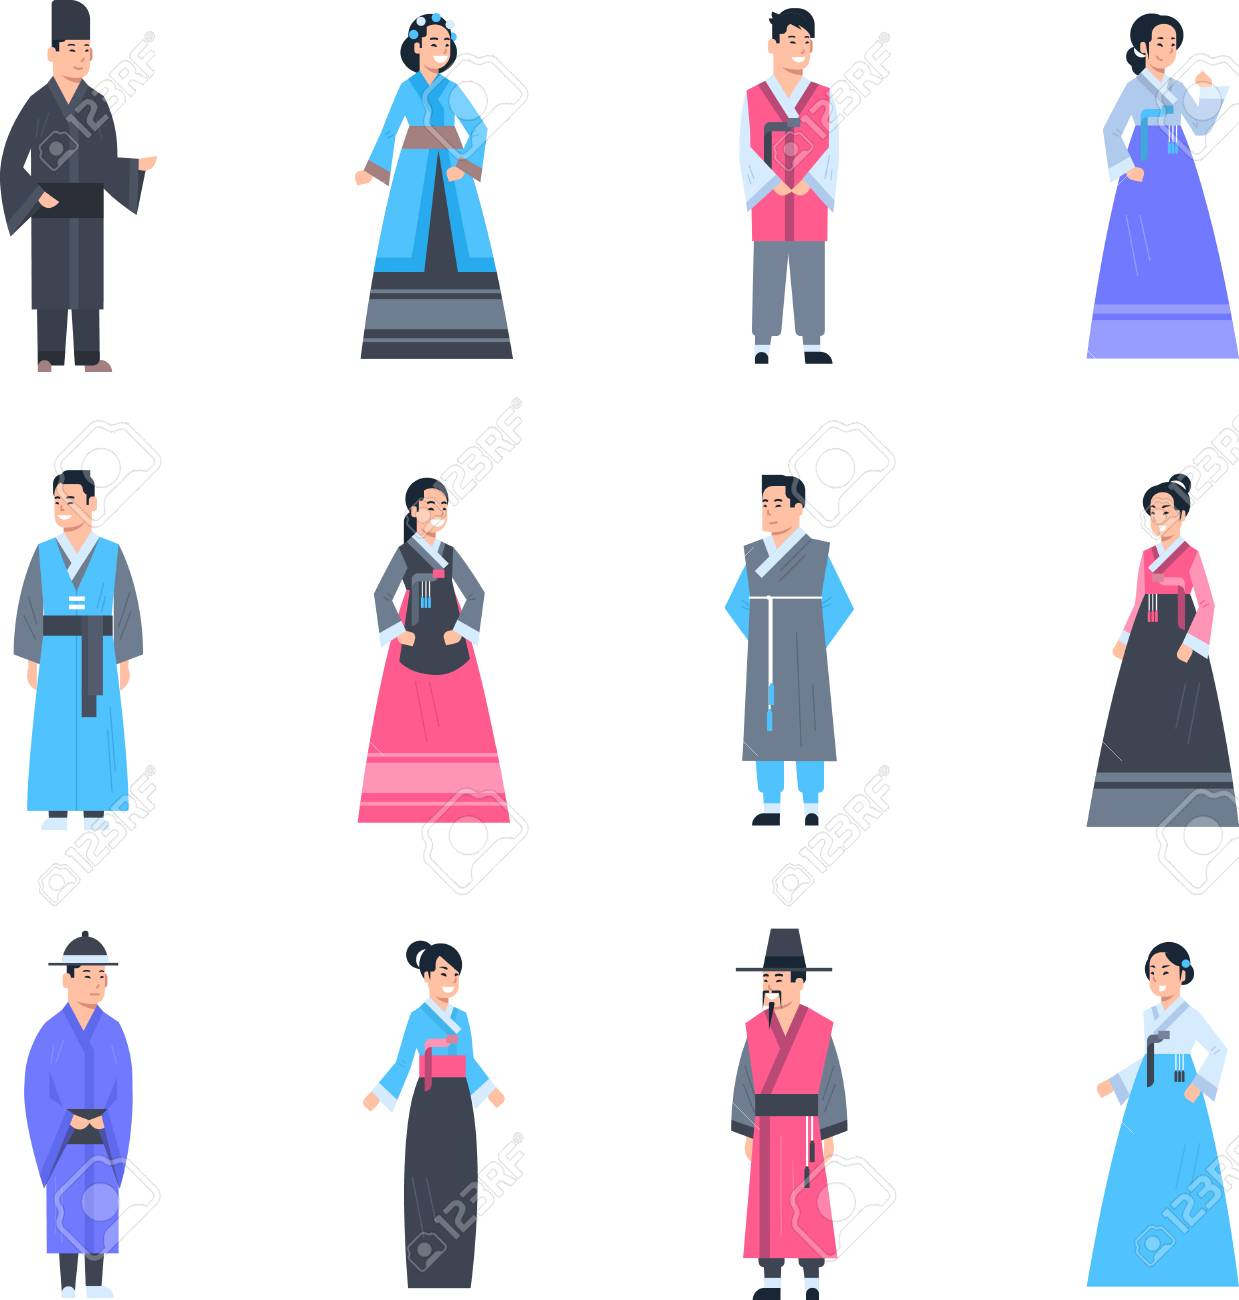 a854acd6399c7 Korea Traditional Clothes Set Of Women And Men Wearing Ancient Costume  Isolated Asian Dress Collection Flat